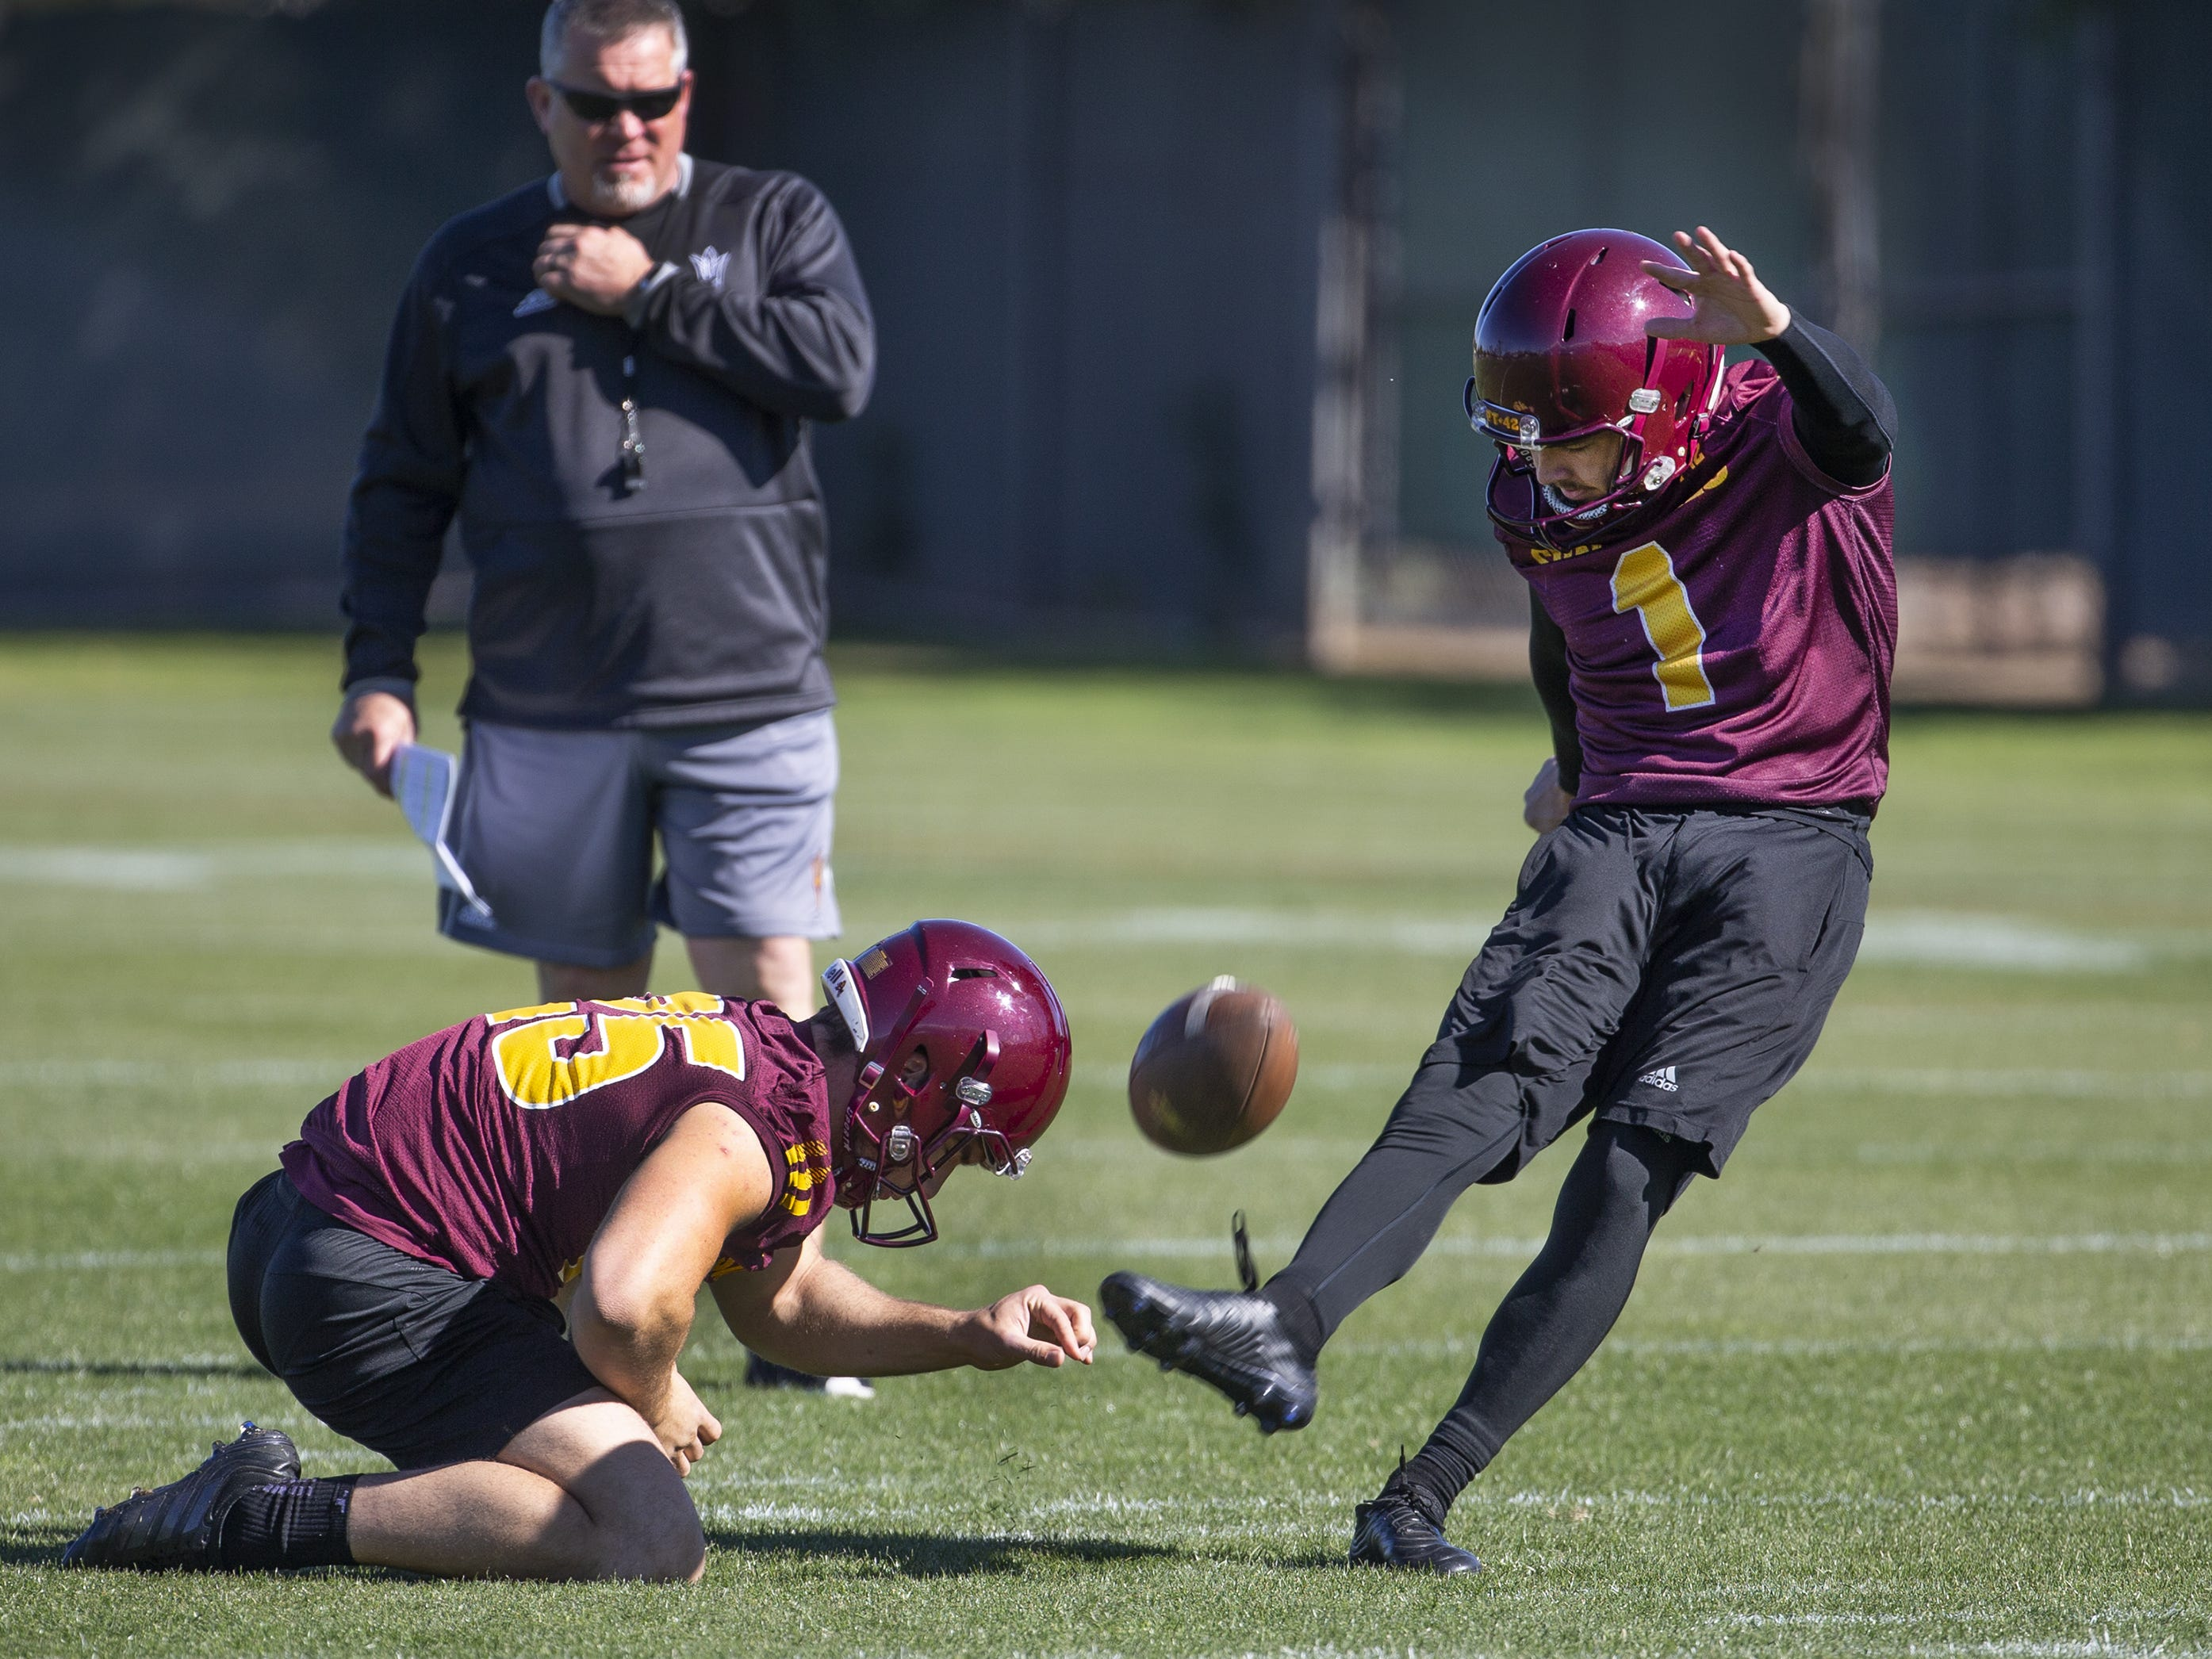 The Arizona State University football team practiced in Tempe, Tuesday, February 26, 2019.   Kicker Brandon Ruiz aims for the goalposts during practice.